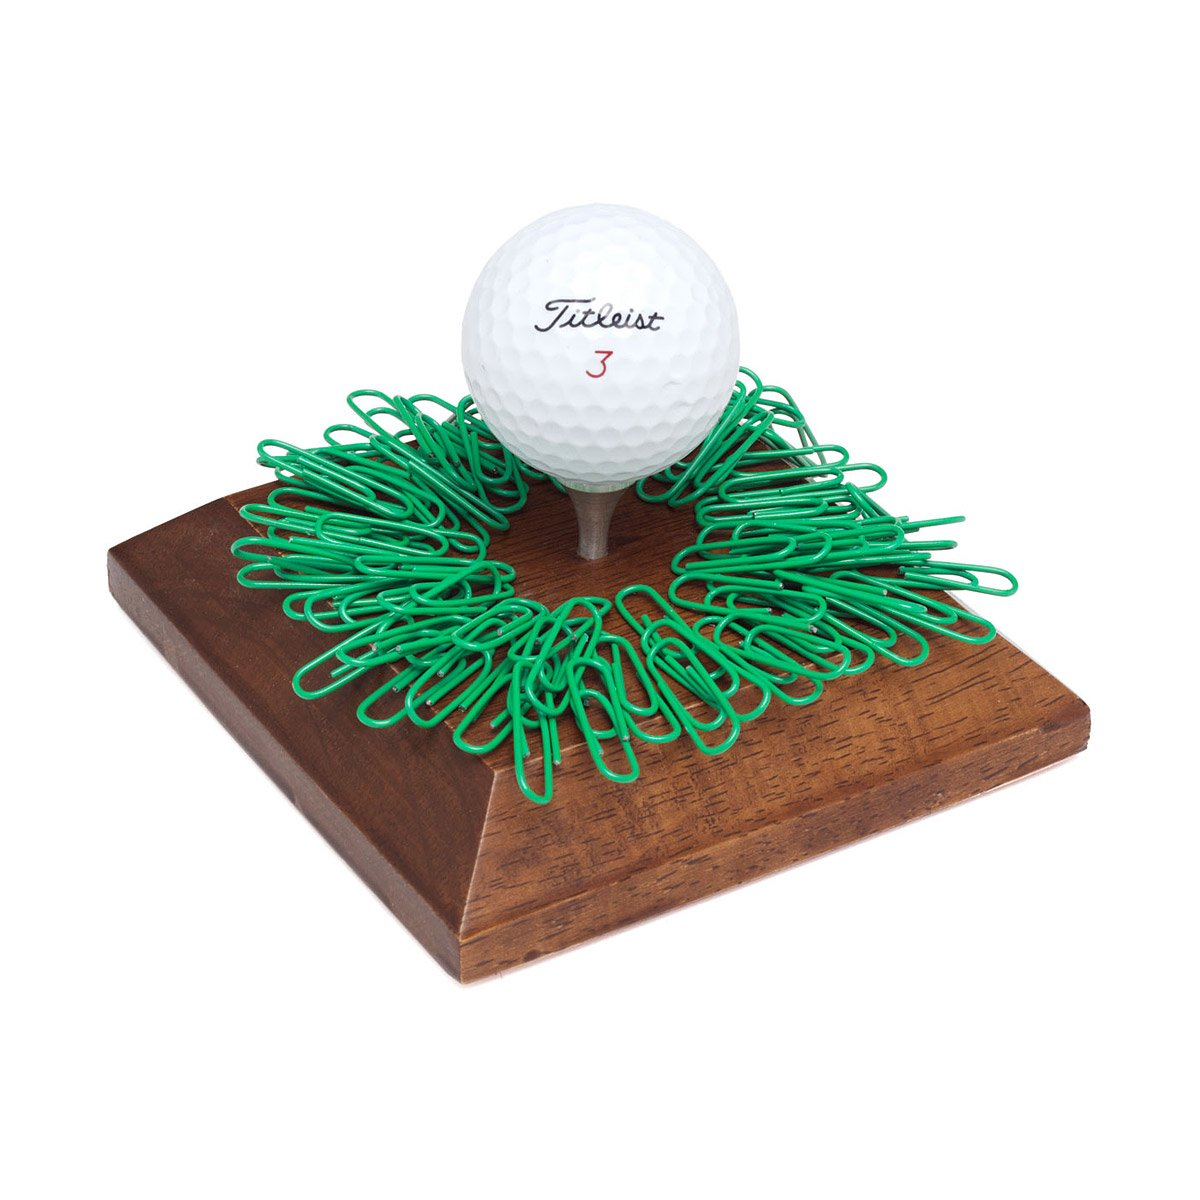 Golf Tee Paperclip Holder   Unique, Fun, Practical Magnetic Wood ...